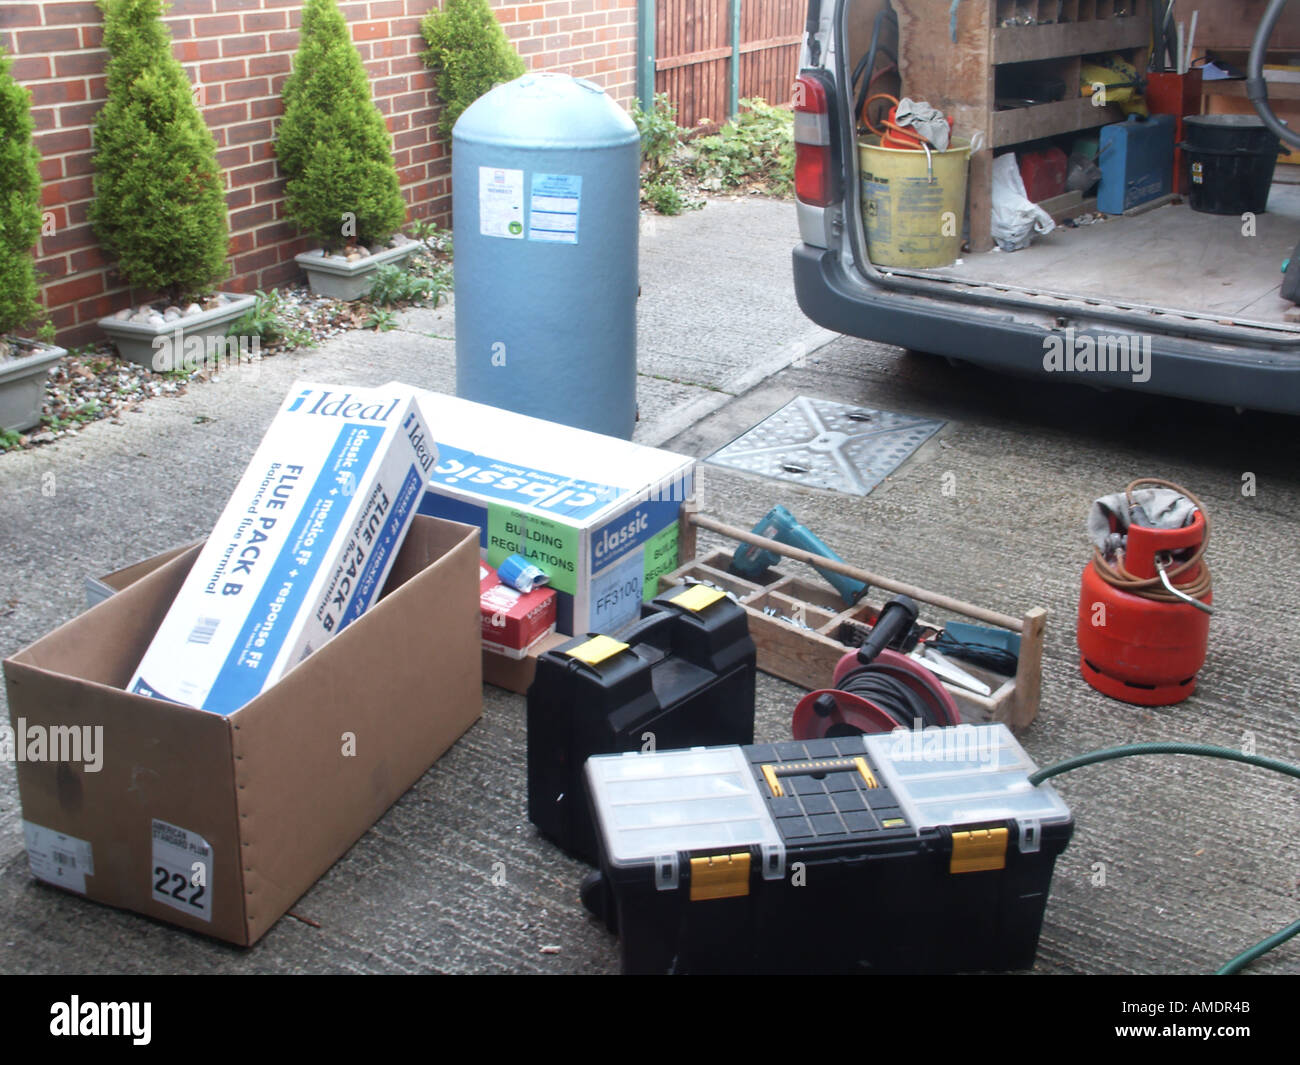 Plumbers van on drive of domestic residence with boxed materials to ...